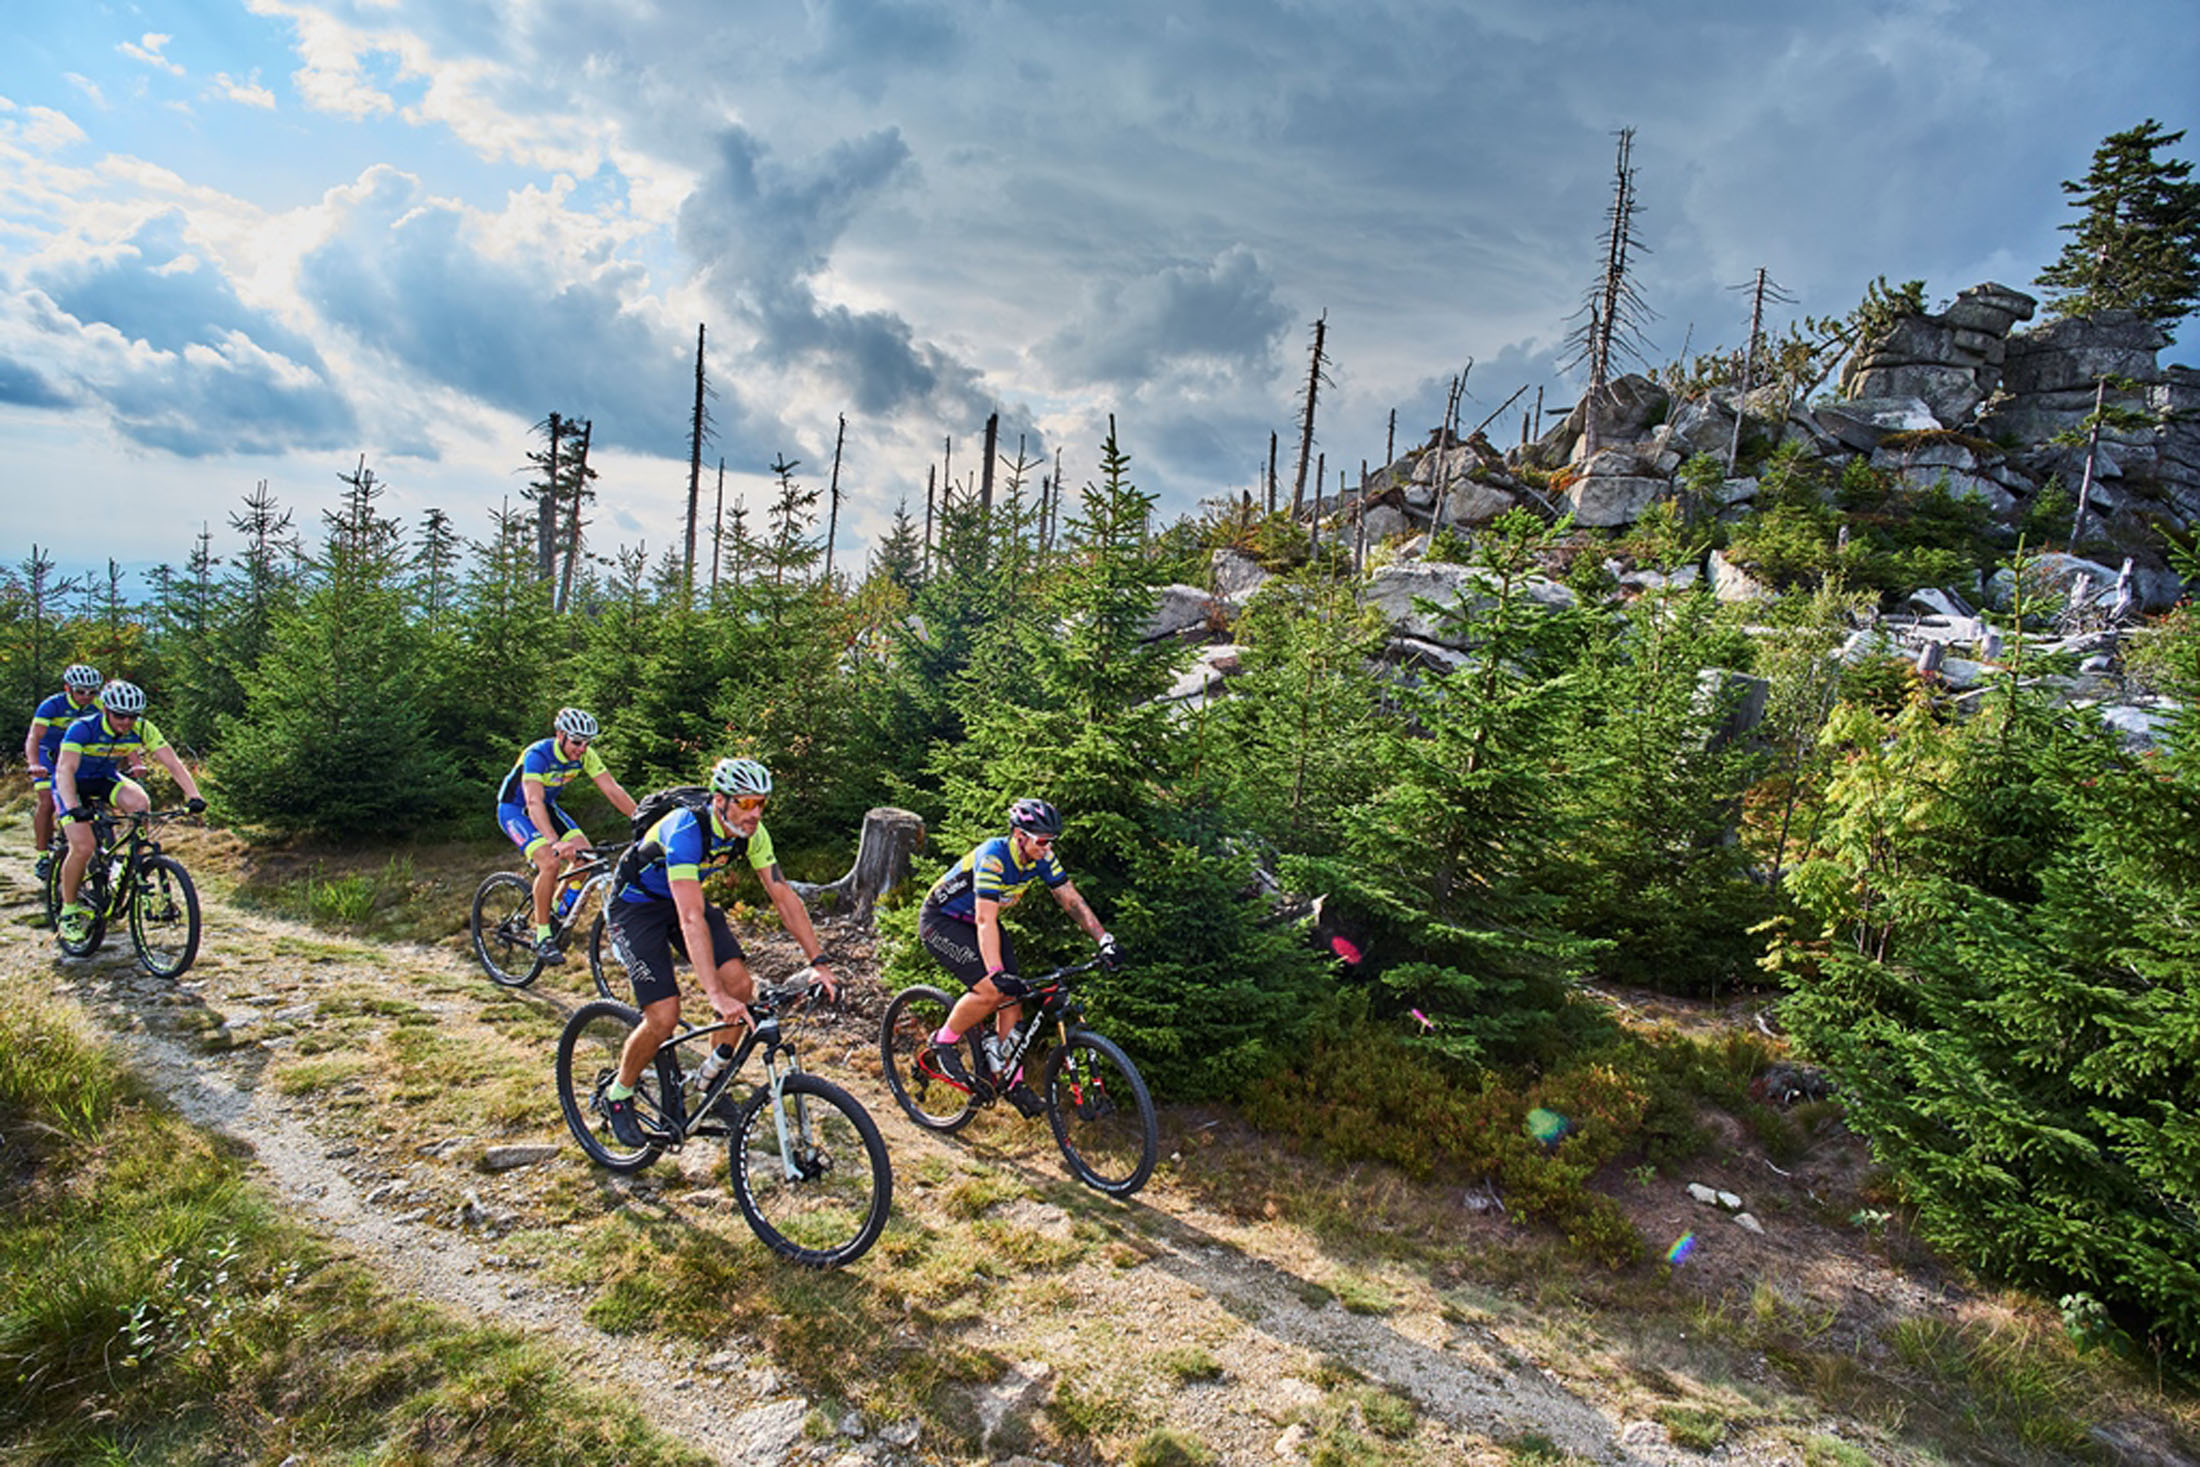 """Cycle Route """"Trans Bayerwald"""" in the Bavarian Forest with a total length of 700 km - Pures MTB Vergnügen auf der 700 km langen Trans Bayerwald"""